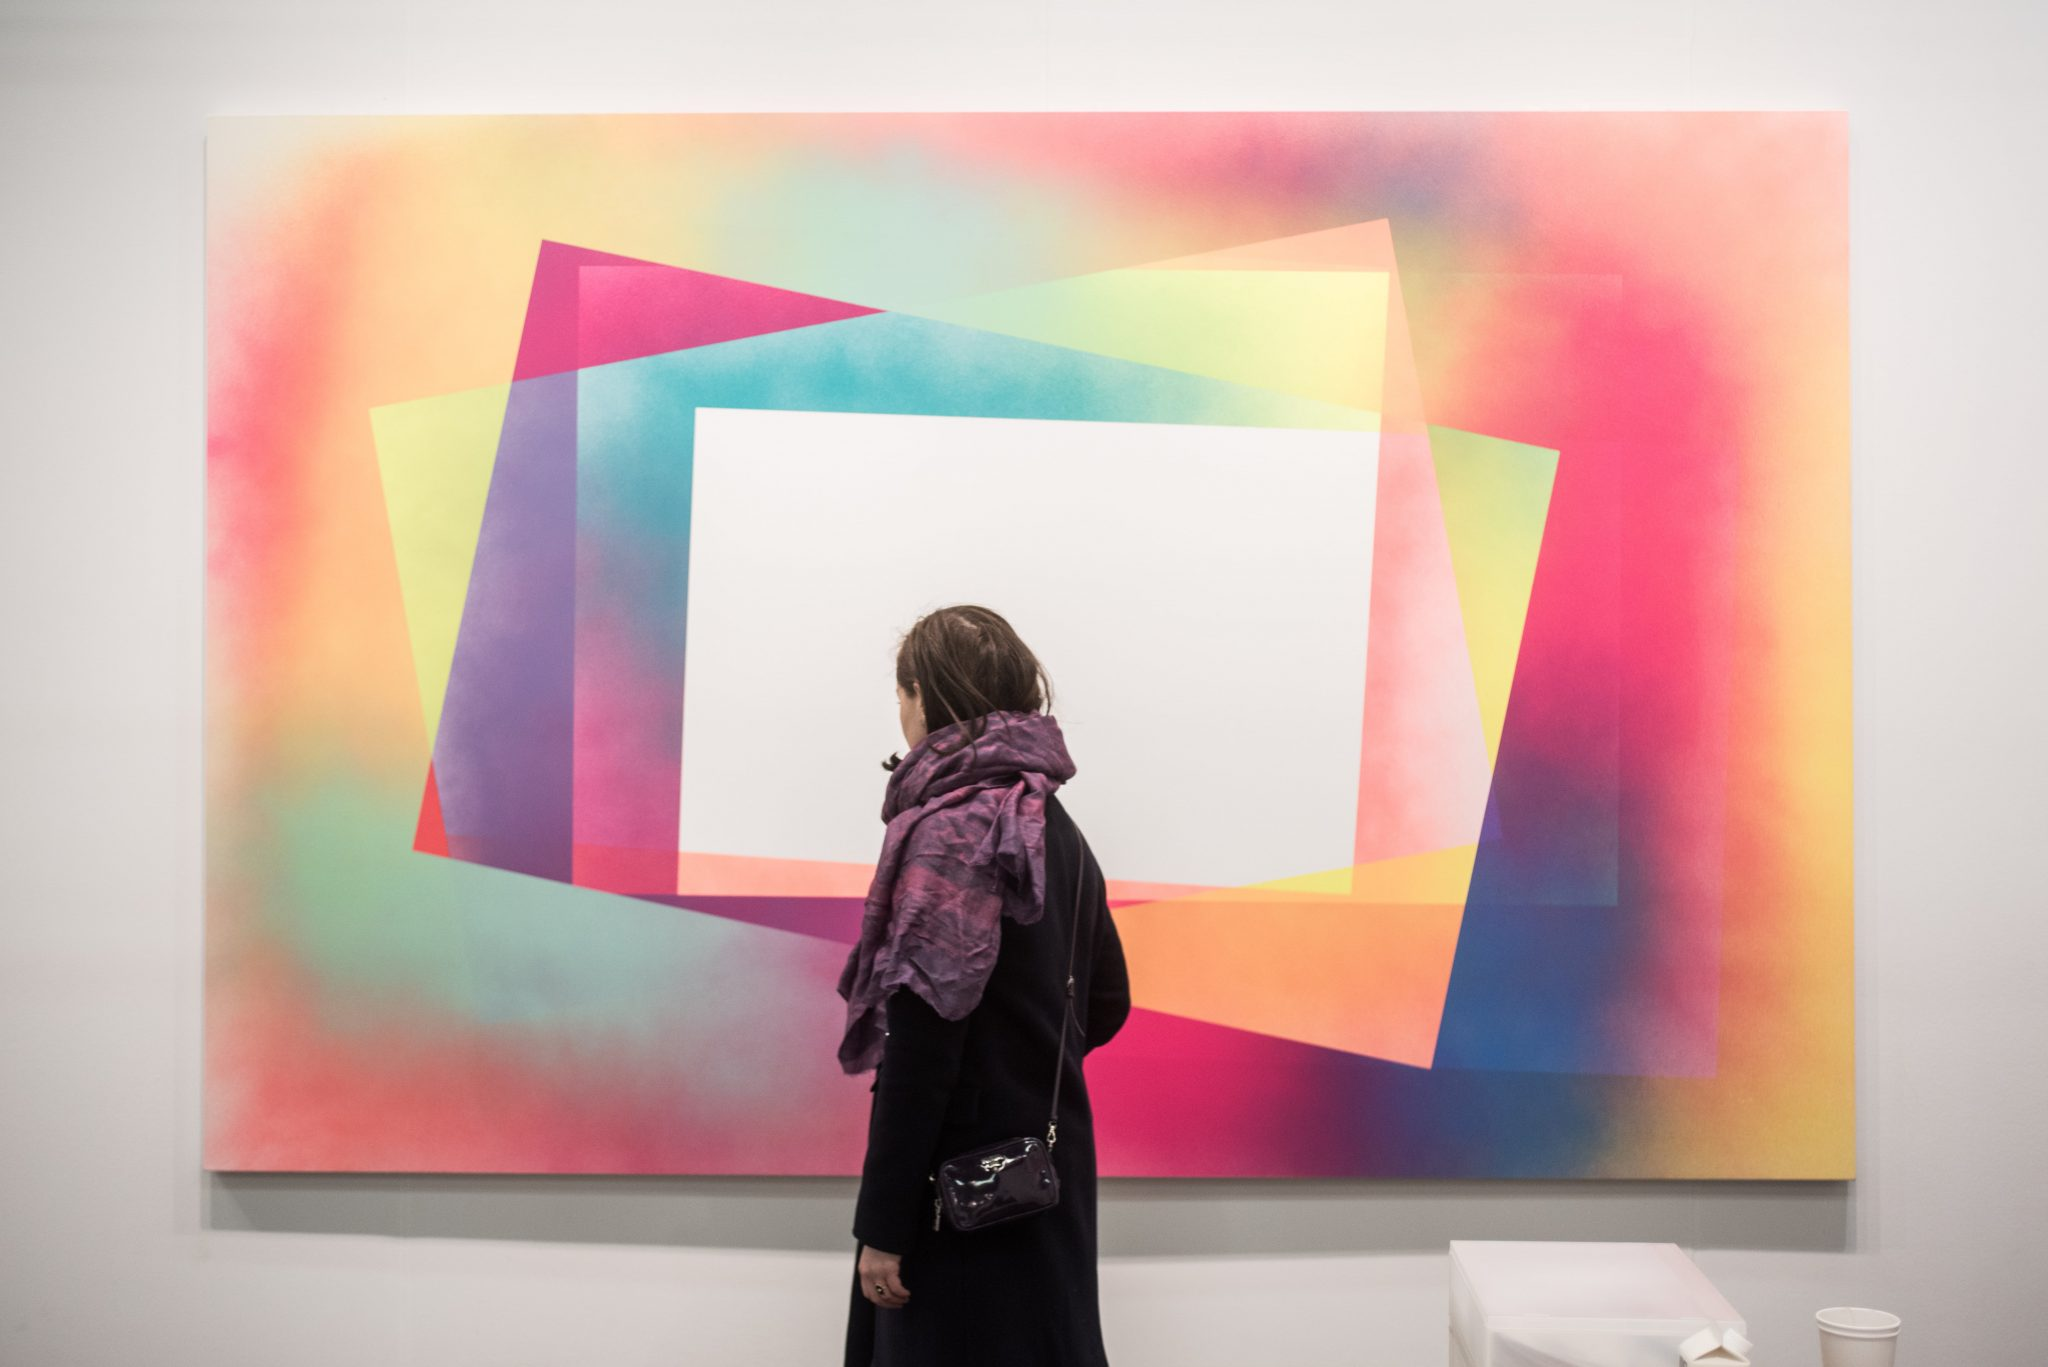 The Armory Show Photograph by Teddy Wolff | Courtesy of The Armory Show